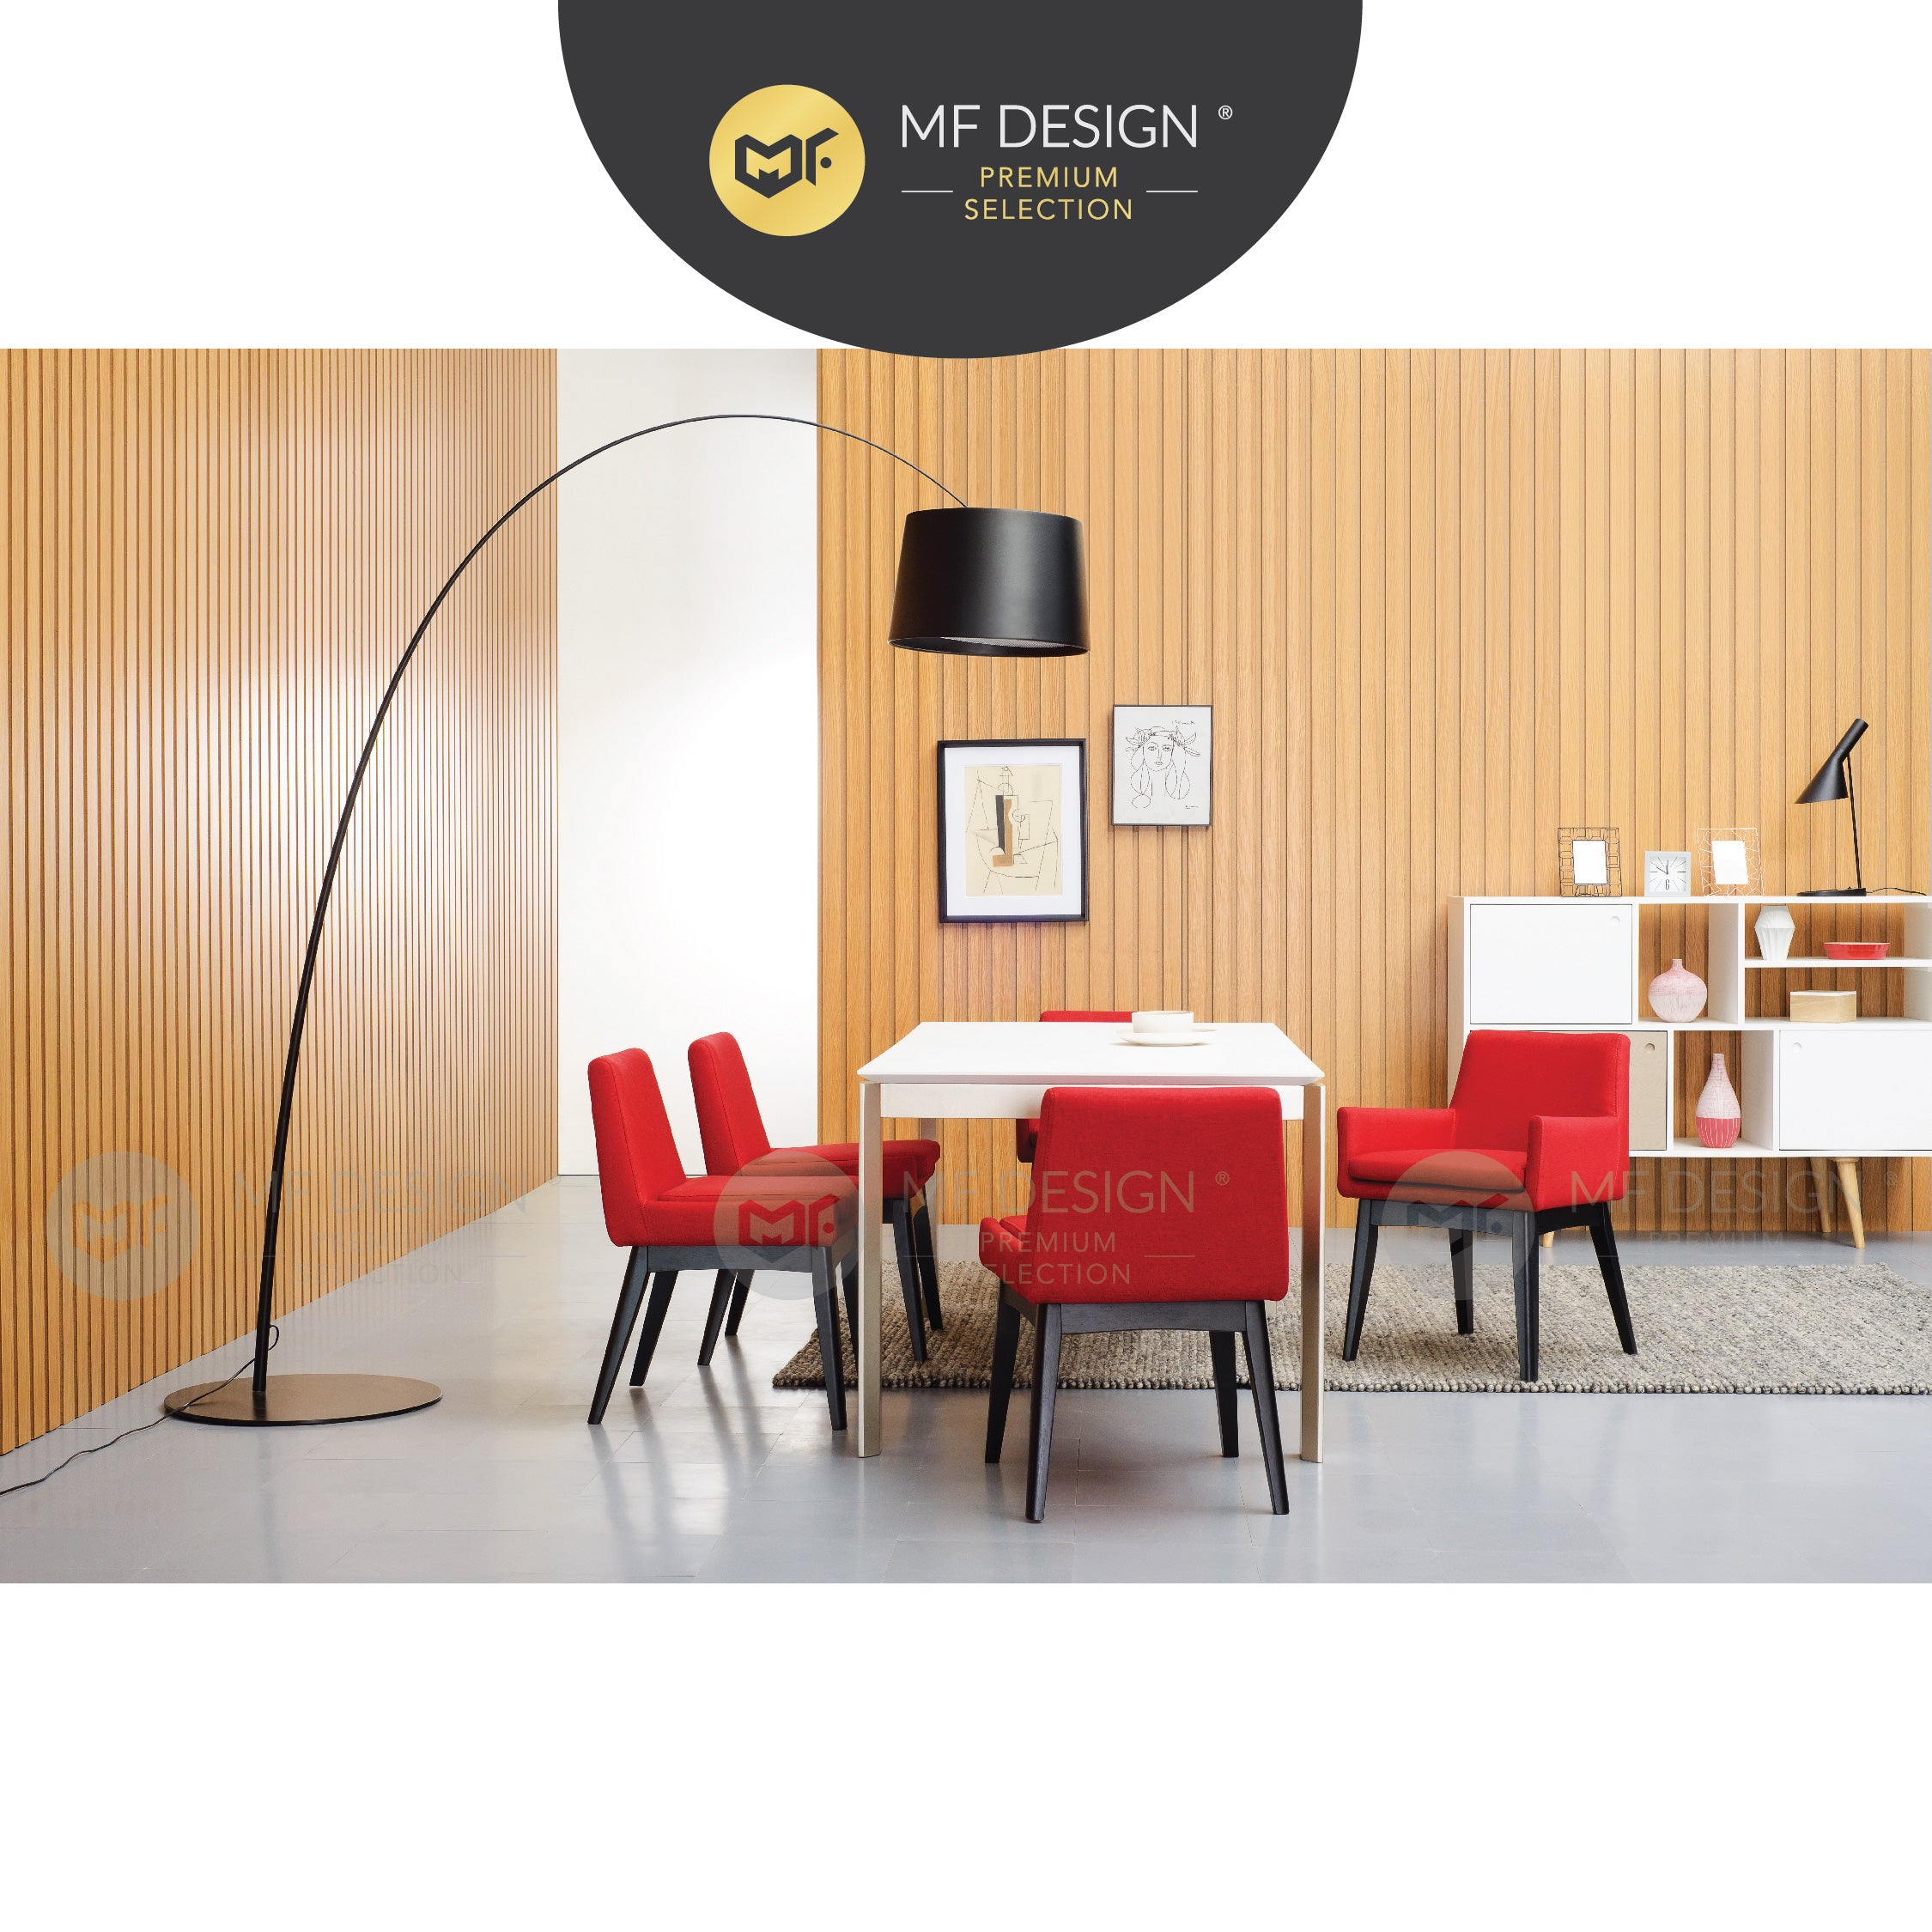 MFD Premium Calliope Dining Chair / Wooden Chair / Solid Rubber Wood / Kerusi Makan Kayu Getah / Living Room